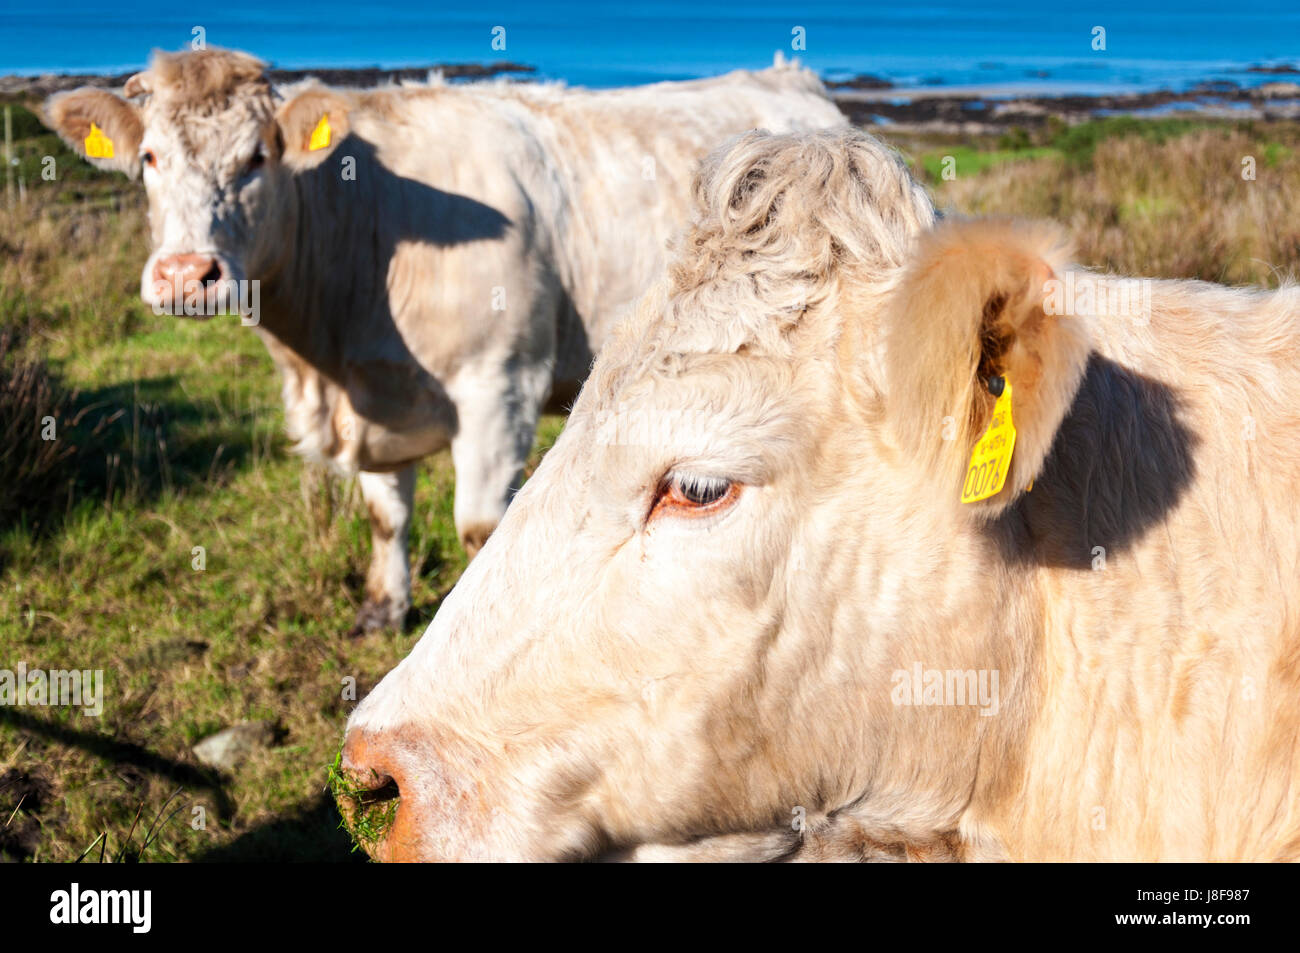 Beef cattle livestock on a farm in County Donegal, Ireland - Stock Image